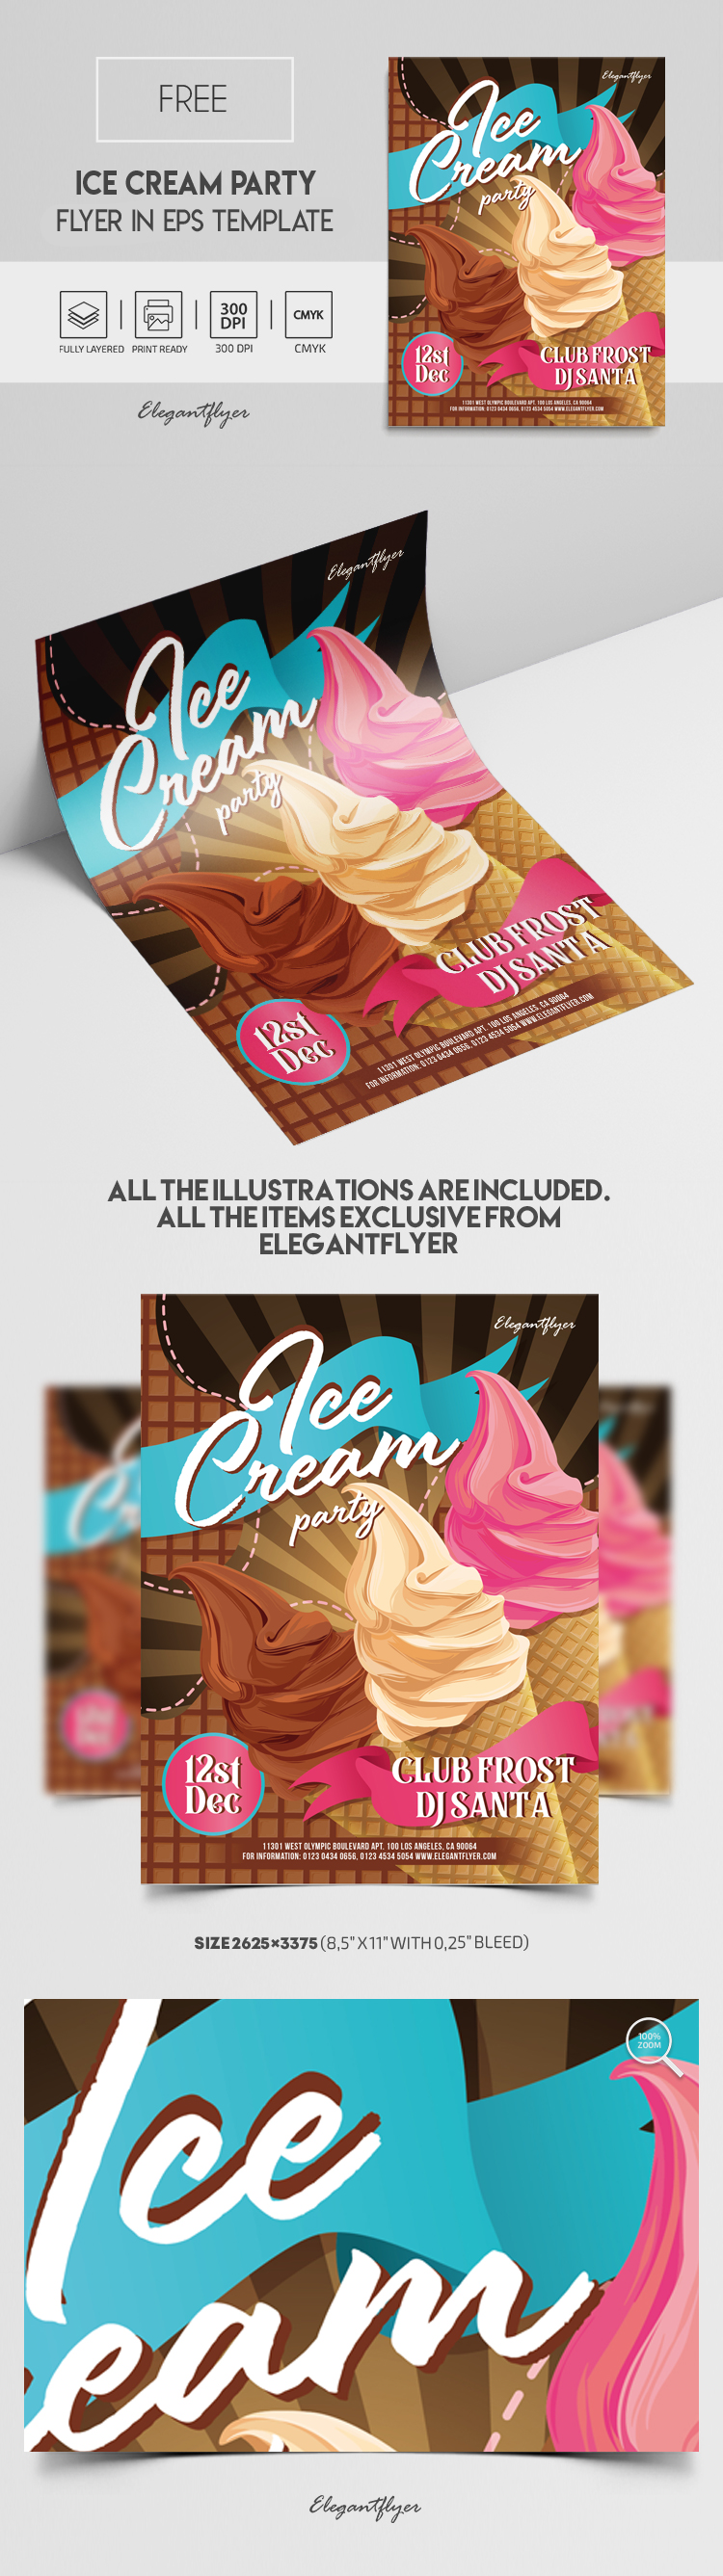 Ice Cream Party – Free Vector Flyer EPS Template